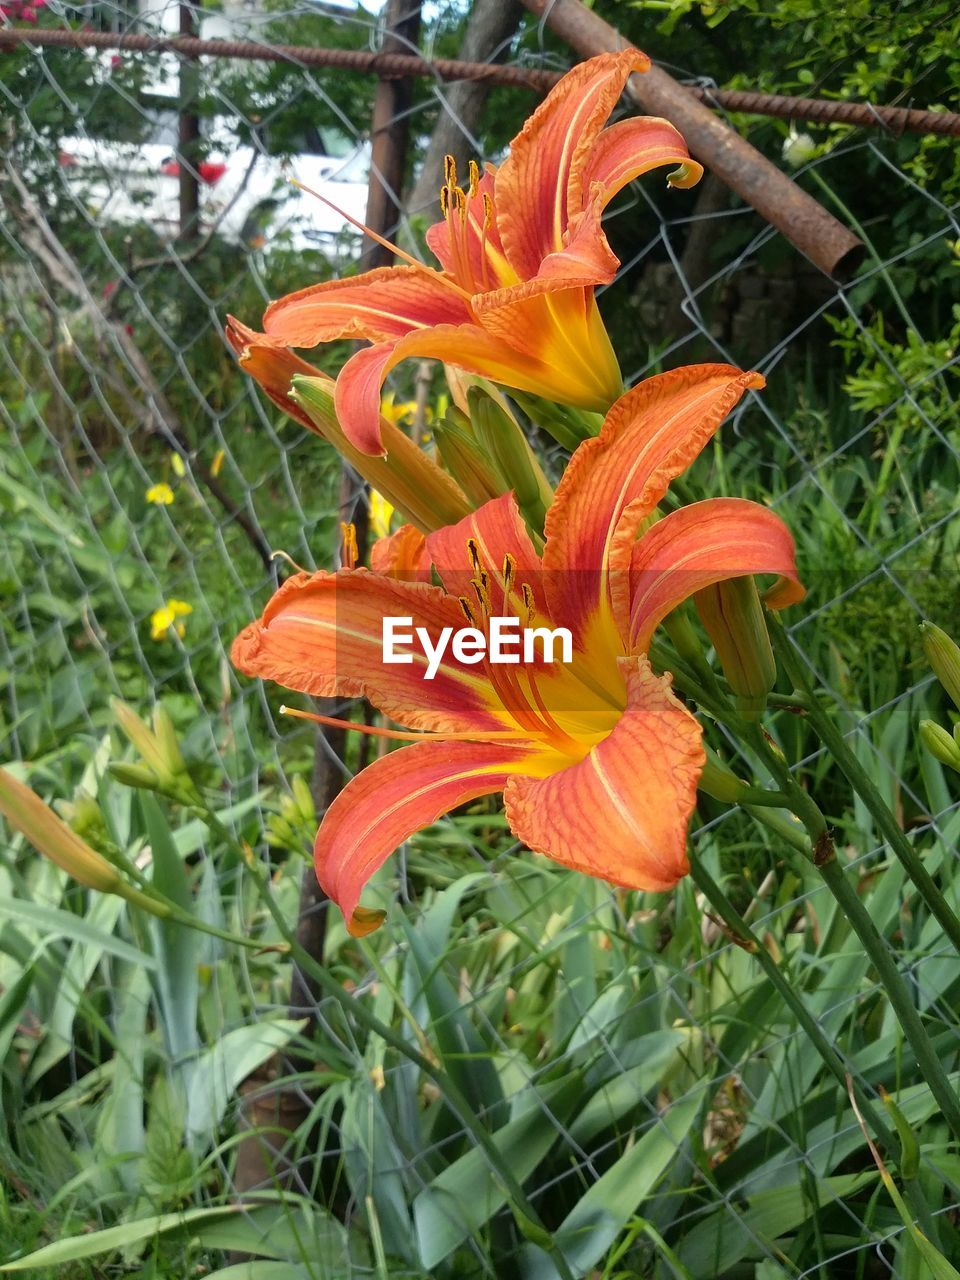 flower, growth, petal, orange color, nature, beauty in nature, freshness, fragility, plant, flower head, blooming, day lily, outdoors, no people, lily, day, close-up